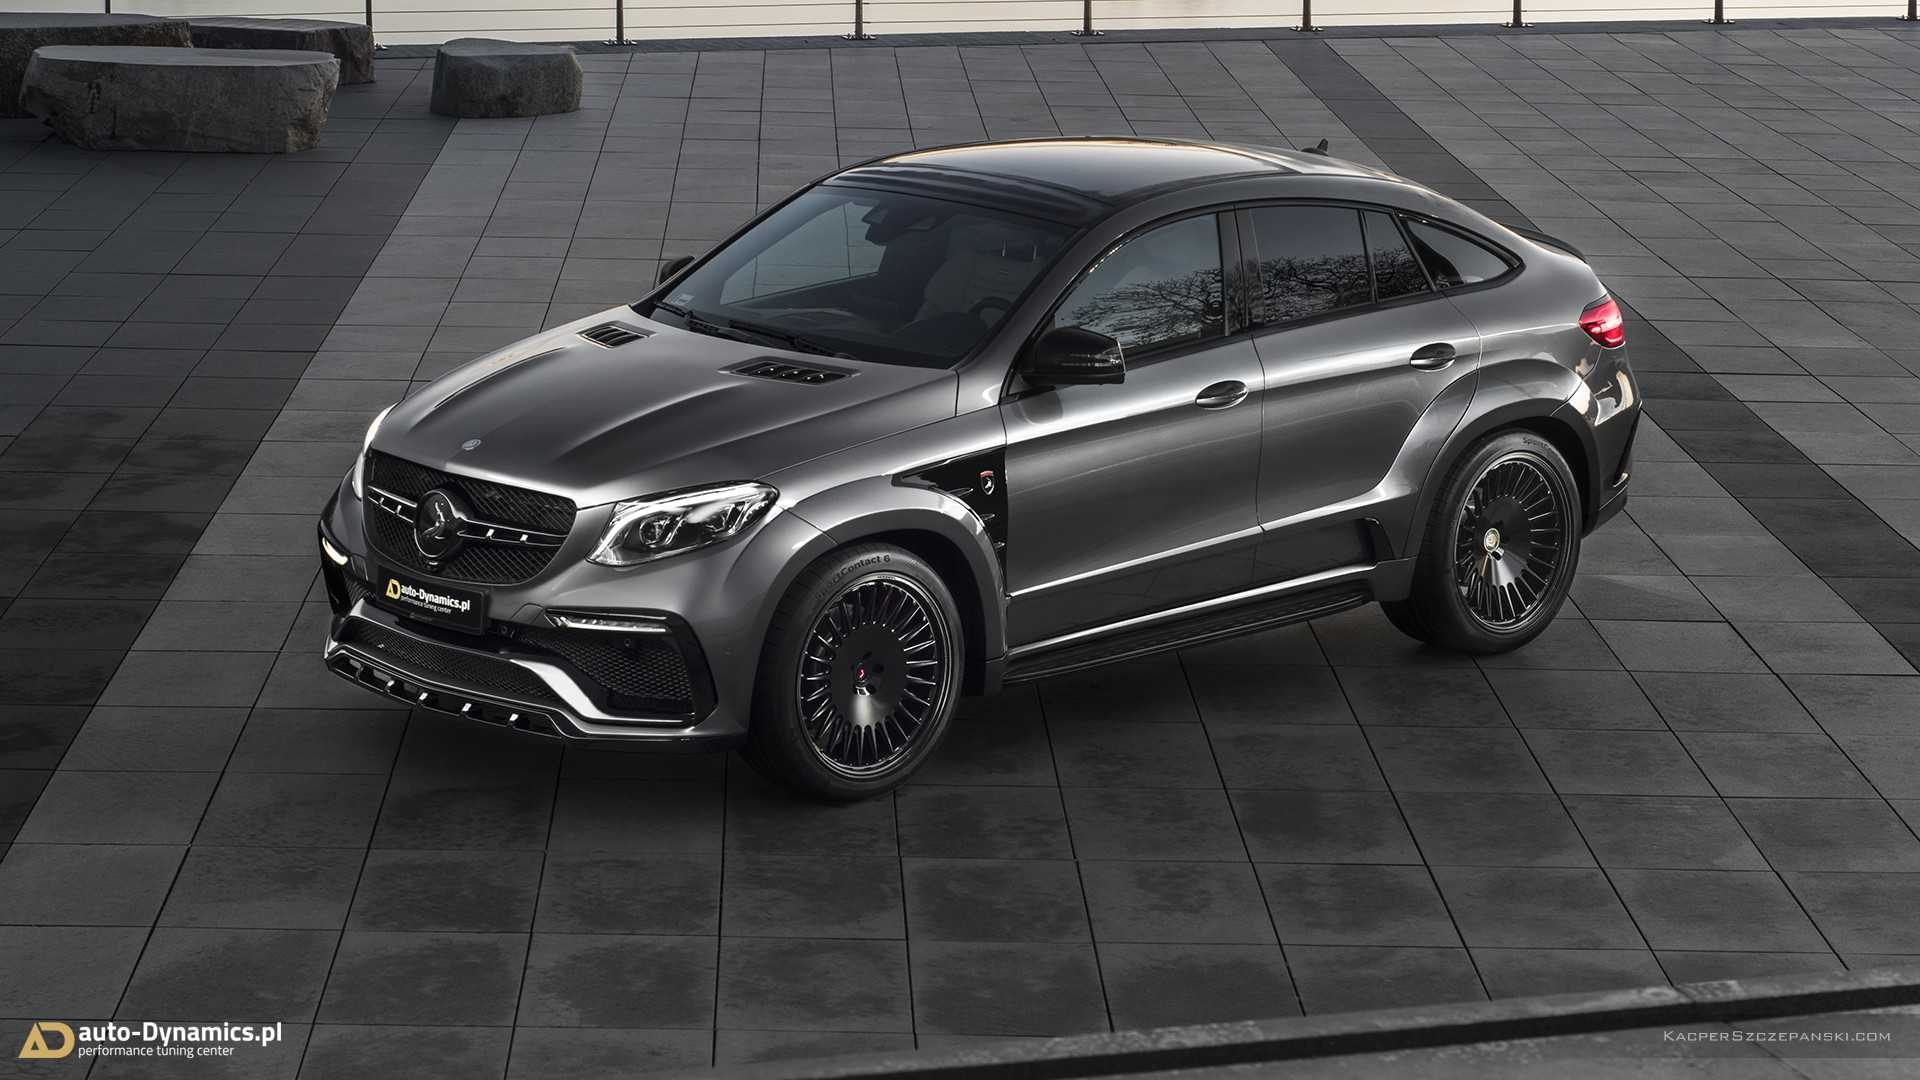 gle-63-s-coupe-project-inferno_1.jpg